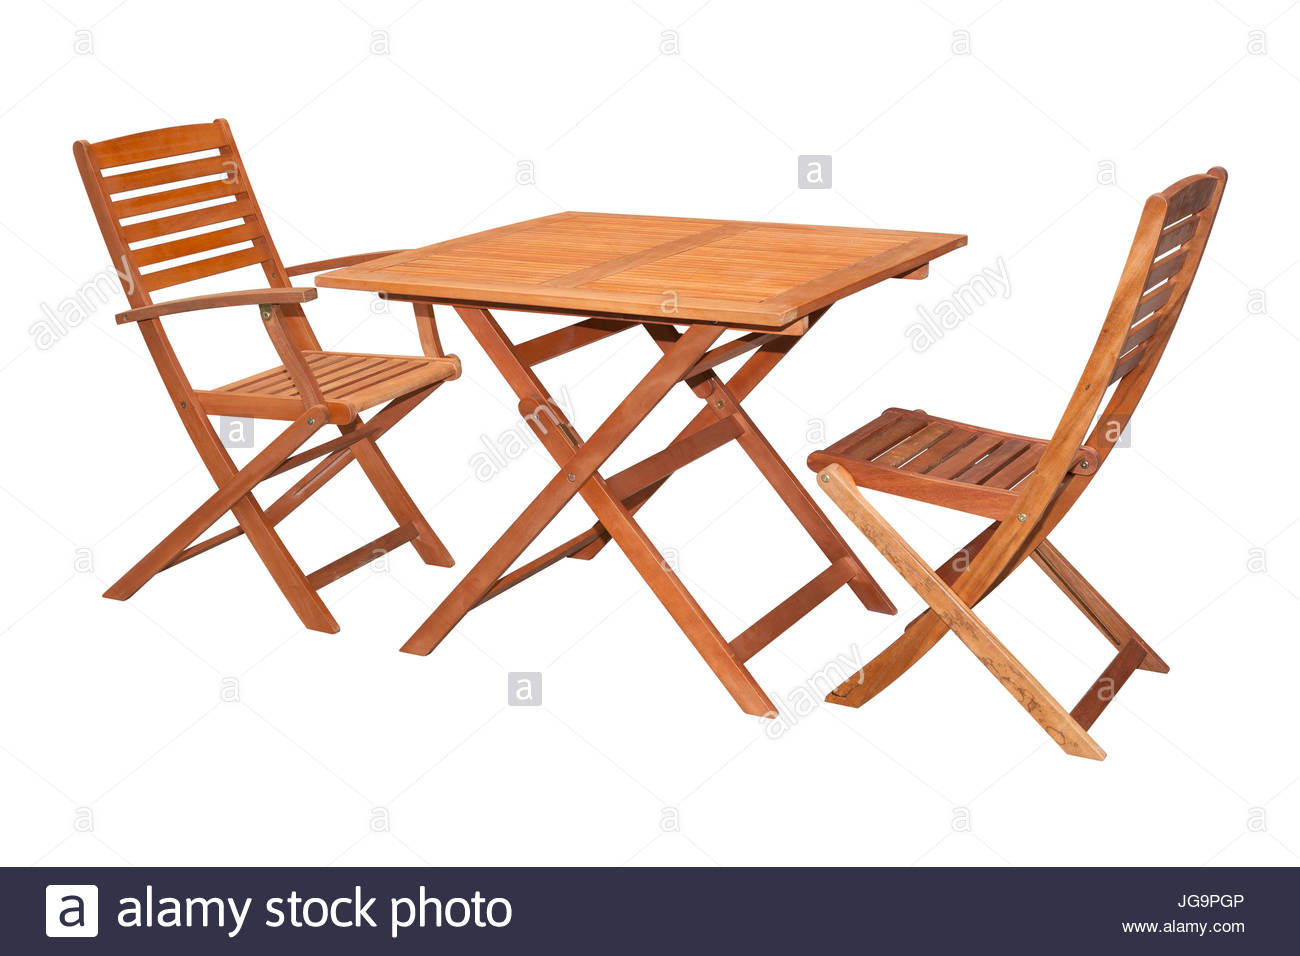 Set Of Folding Wooden Garden Furniture Table And Chairs inside proportions 1300 X 956